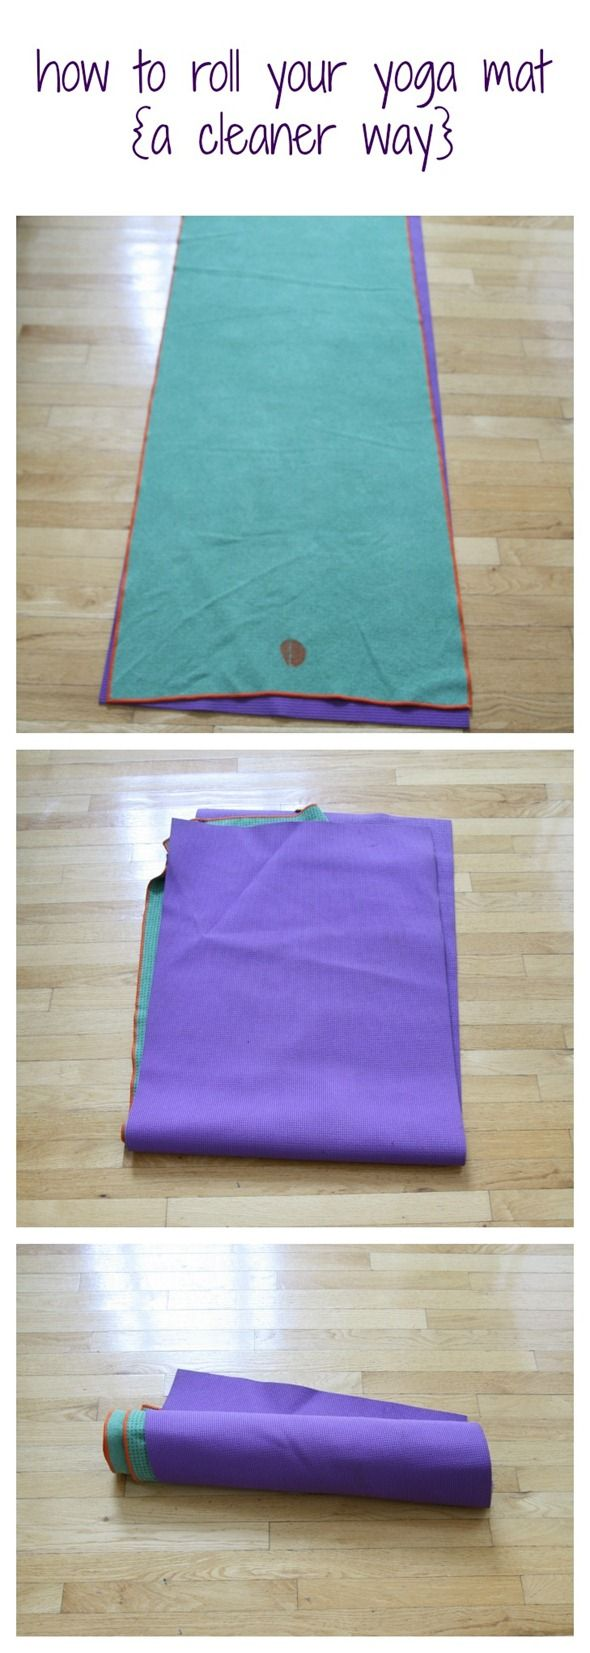 how to roll your yoga mat